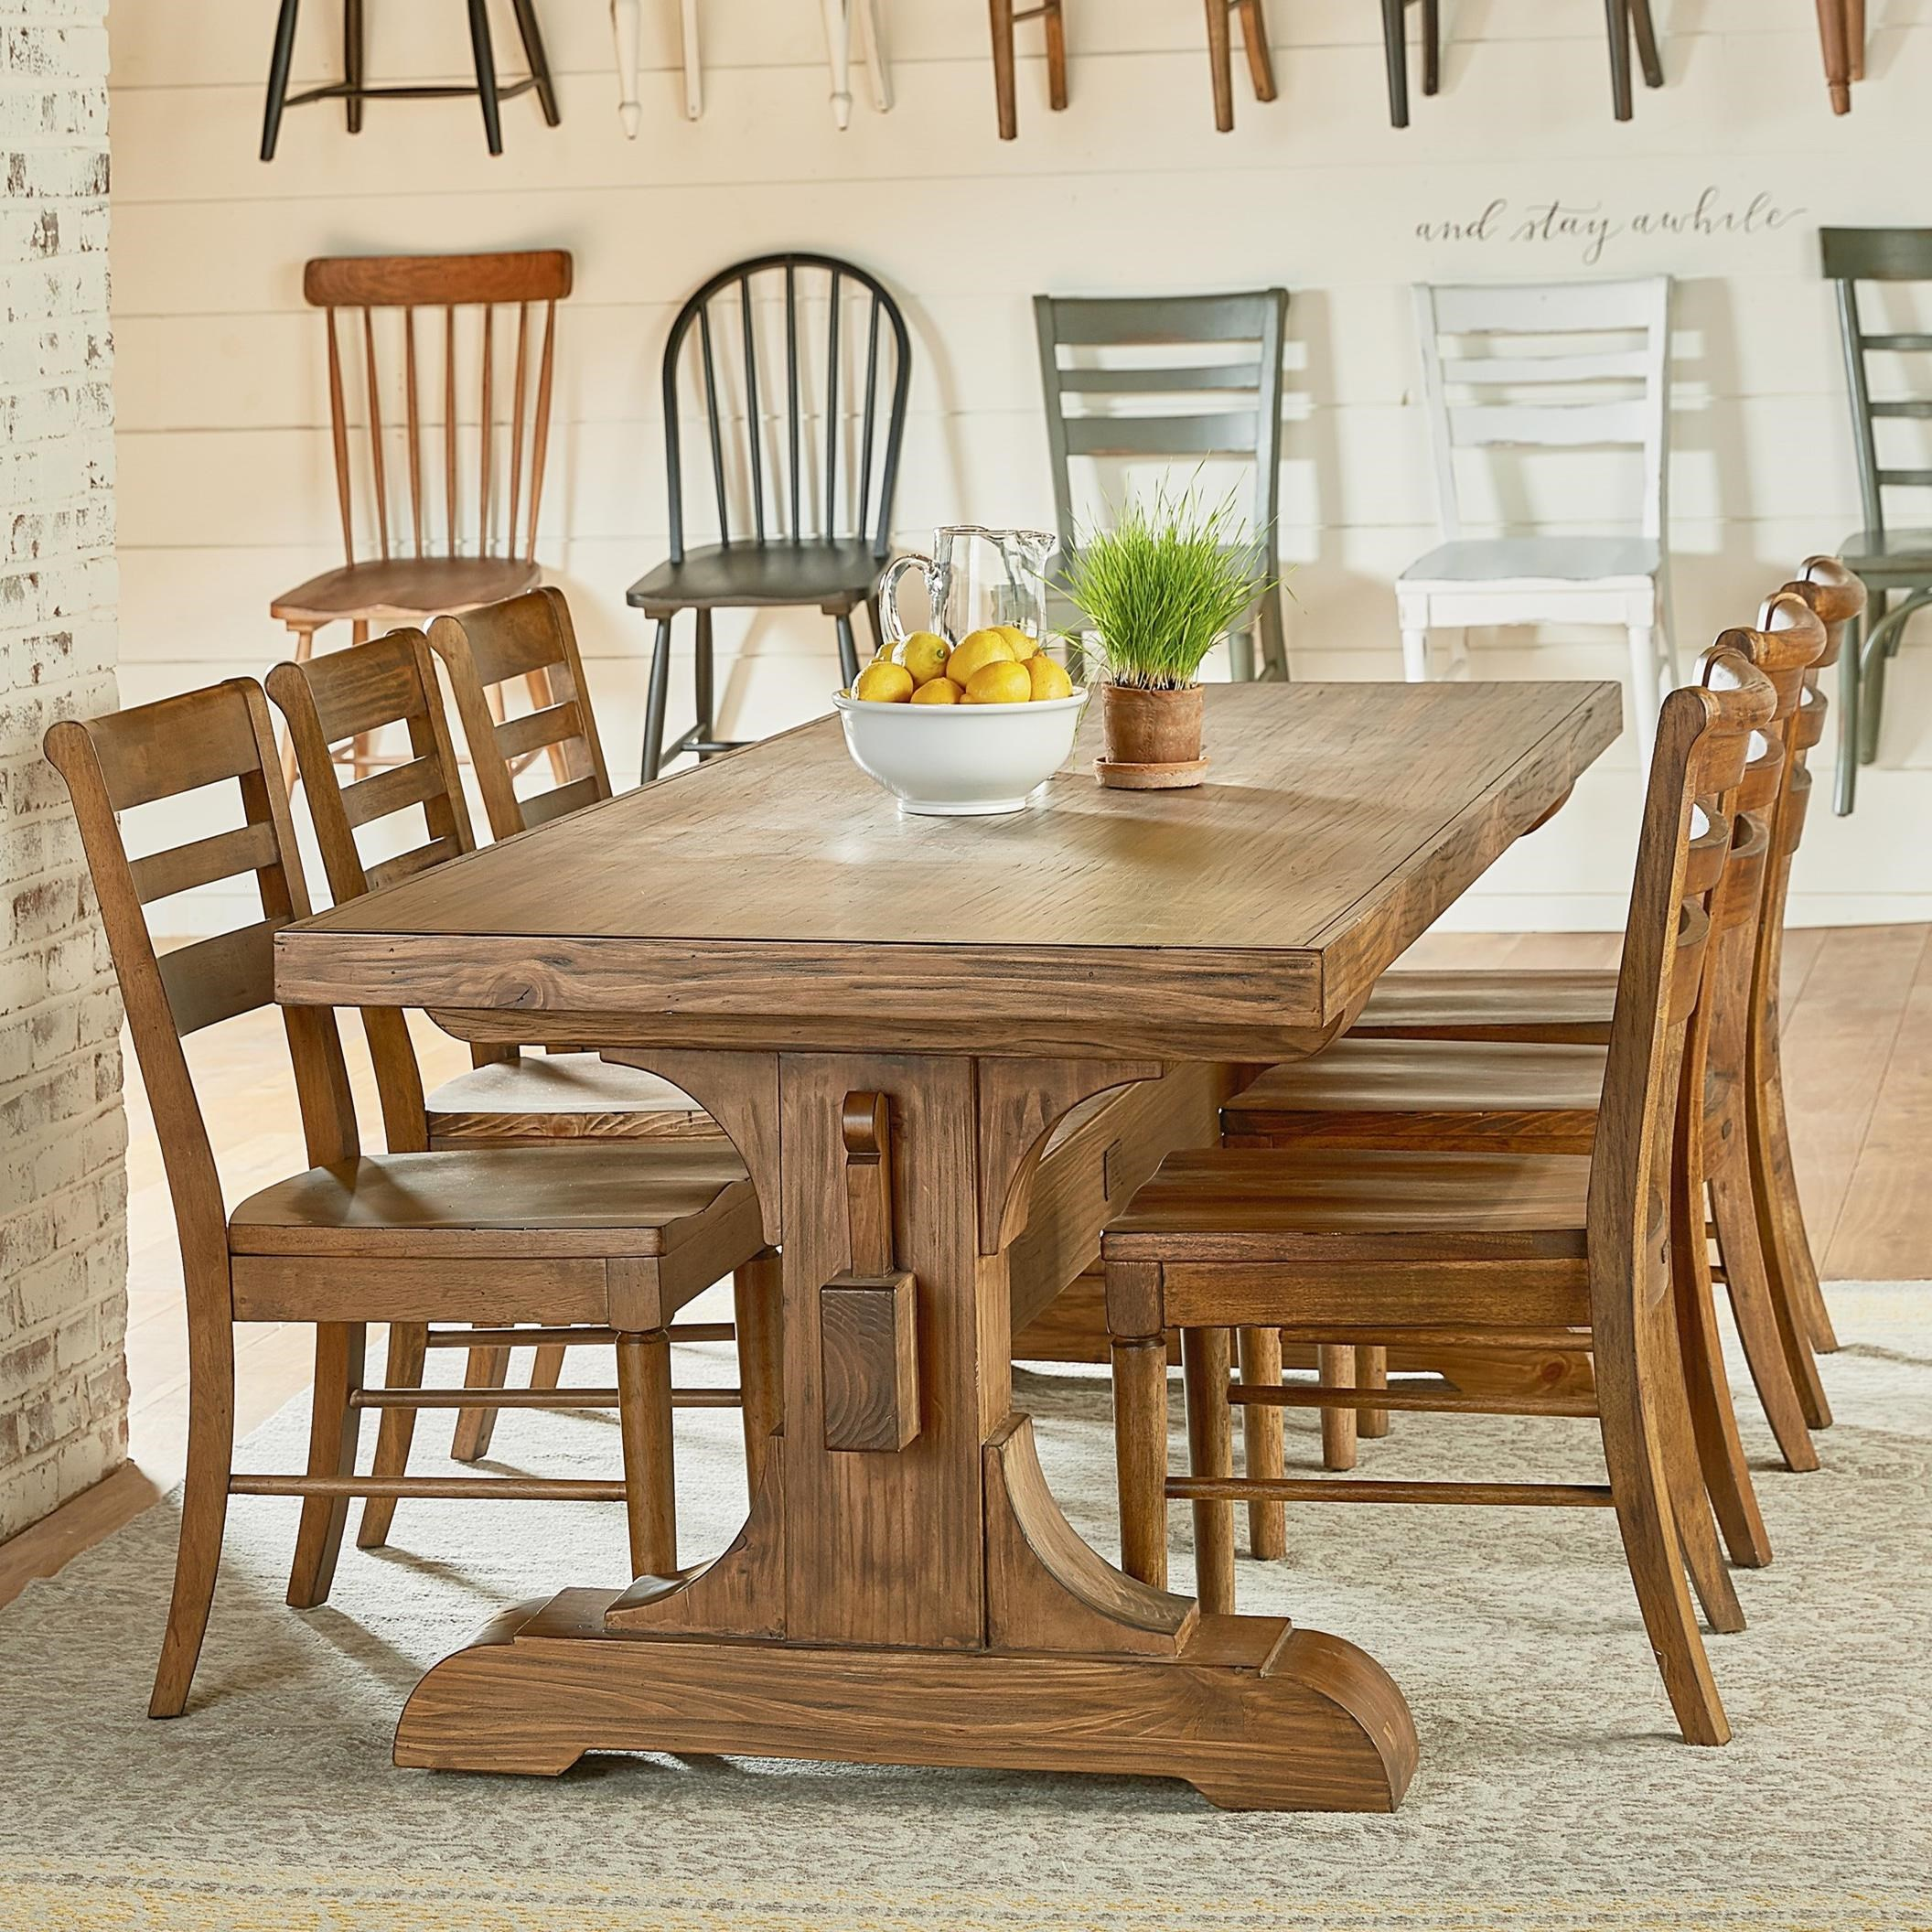 Farmhouse Table And Chairs Set Magnolia Home By Joanna Gaines Farmhouse Seven Piece